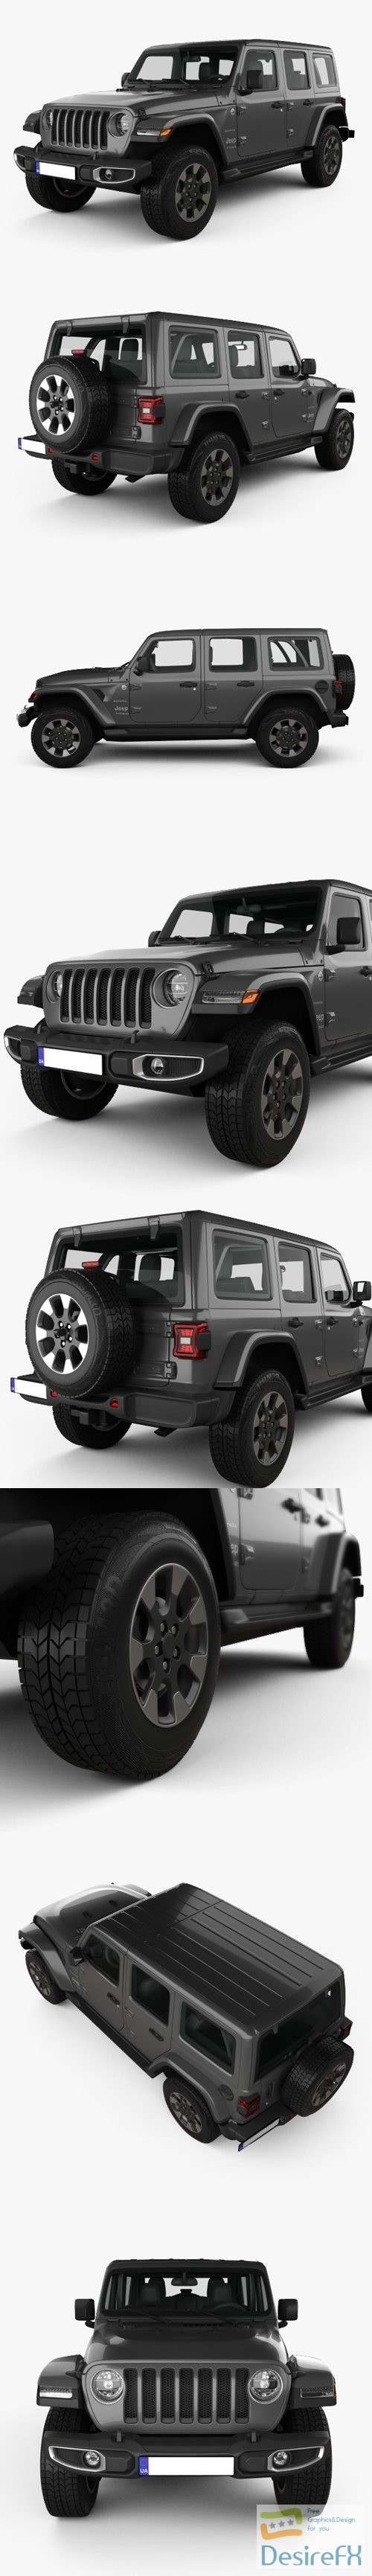 3d-models - Jeep Wrangler Unlimited Sahara 2018 3D Model